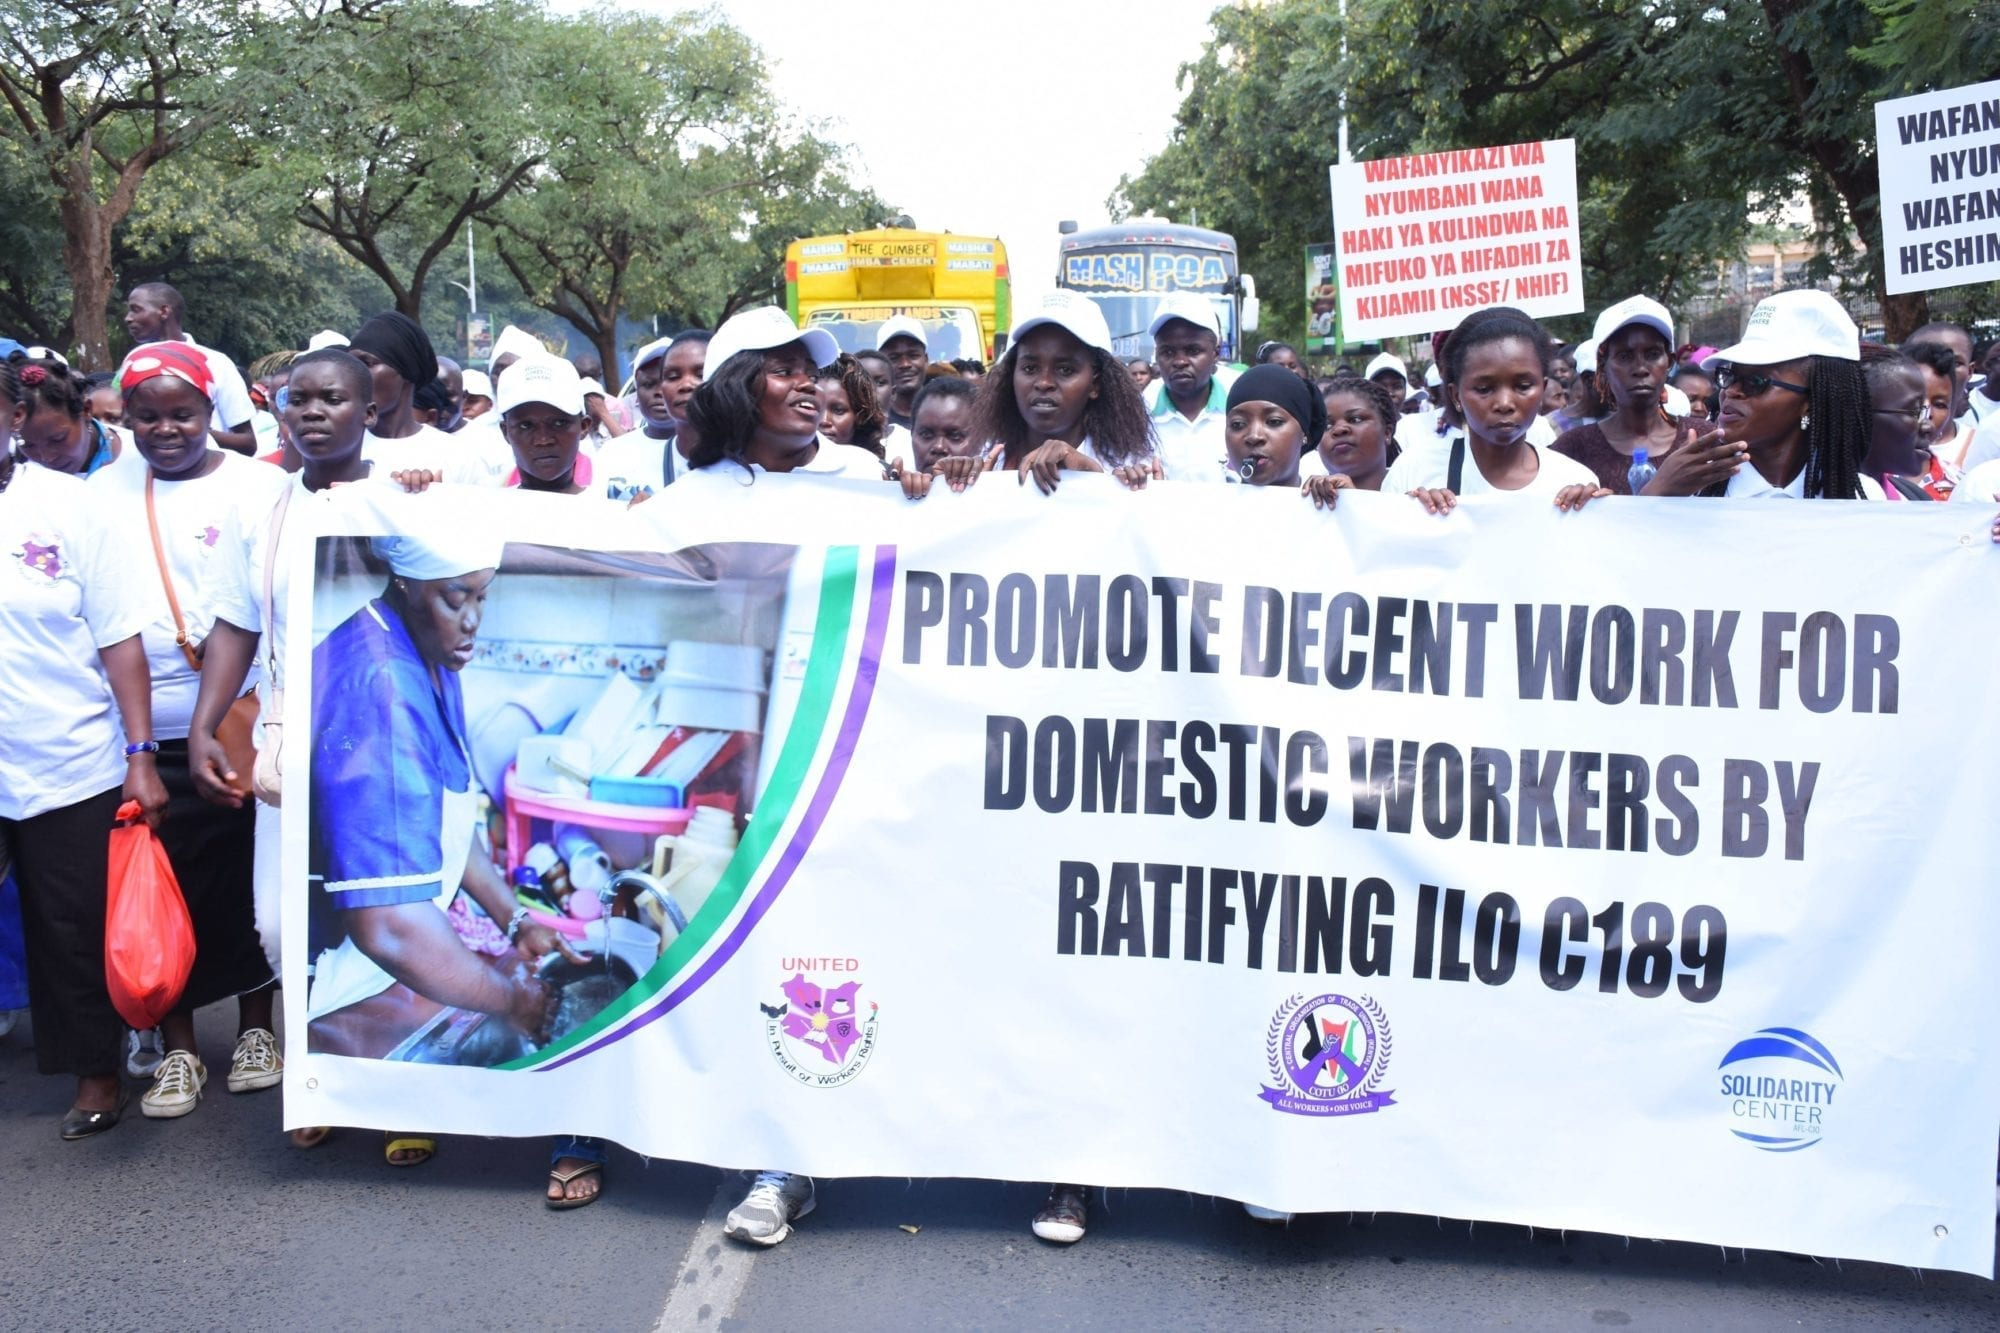 Kenya Domestic Workers Push for Convention Ratification